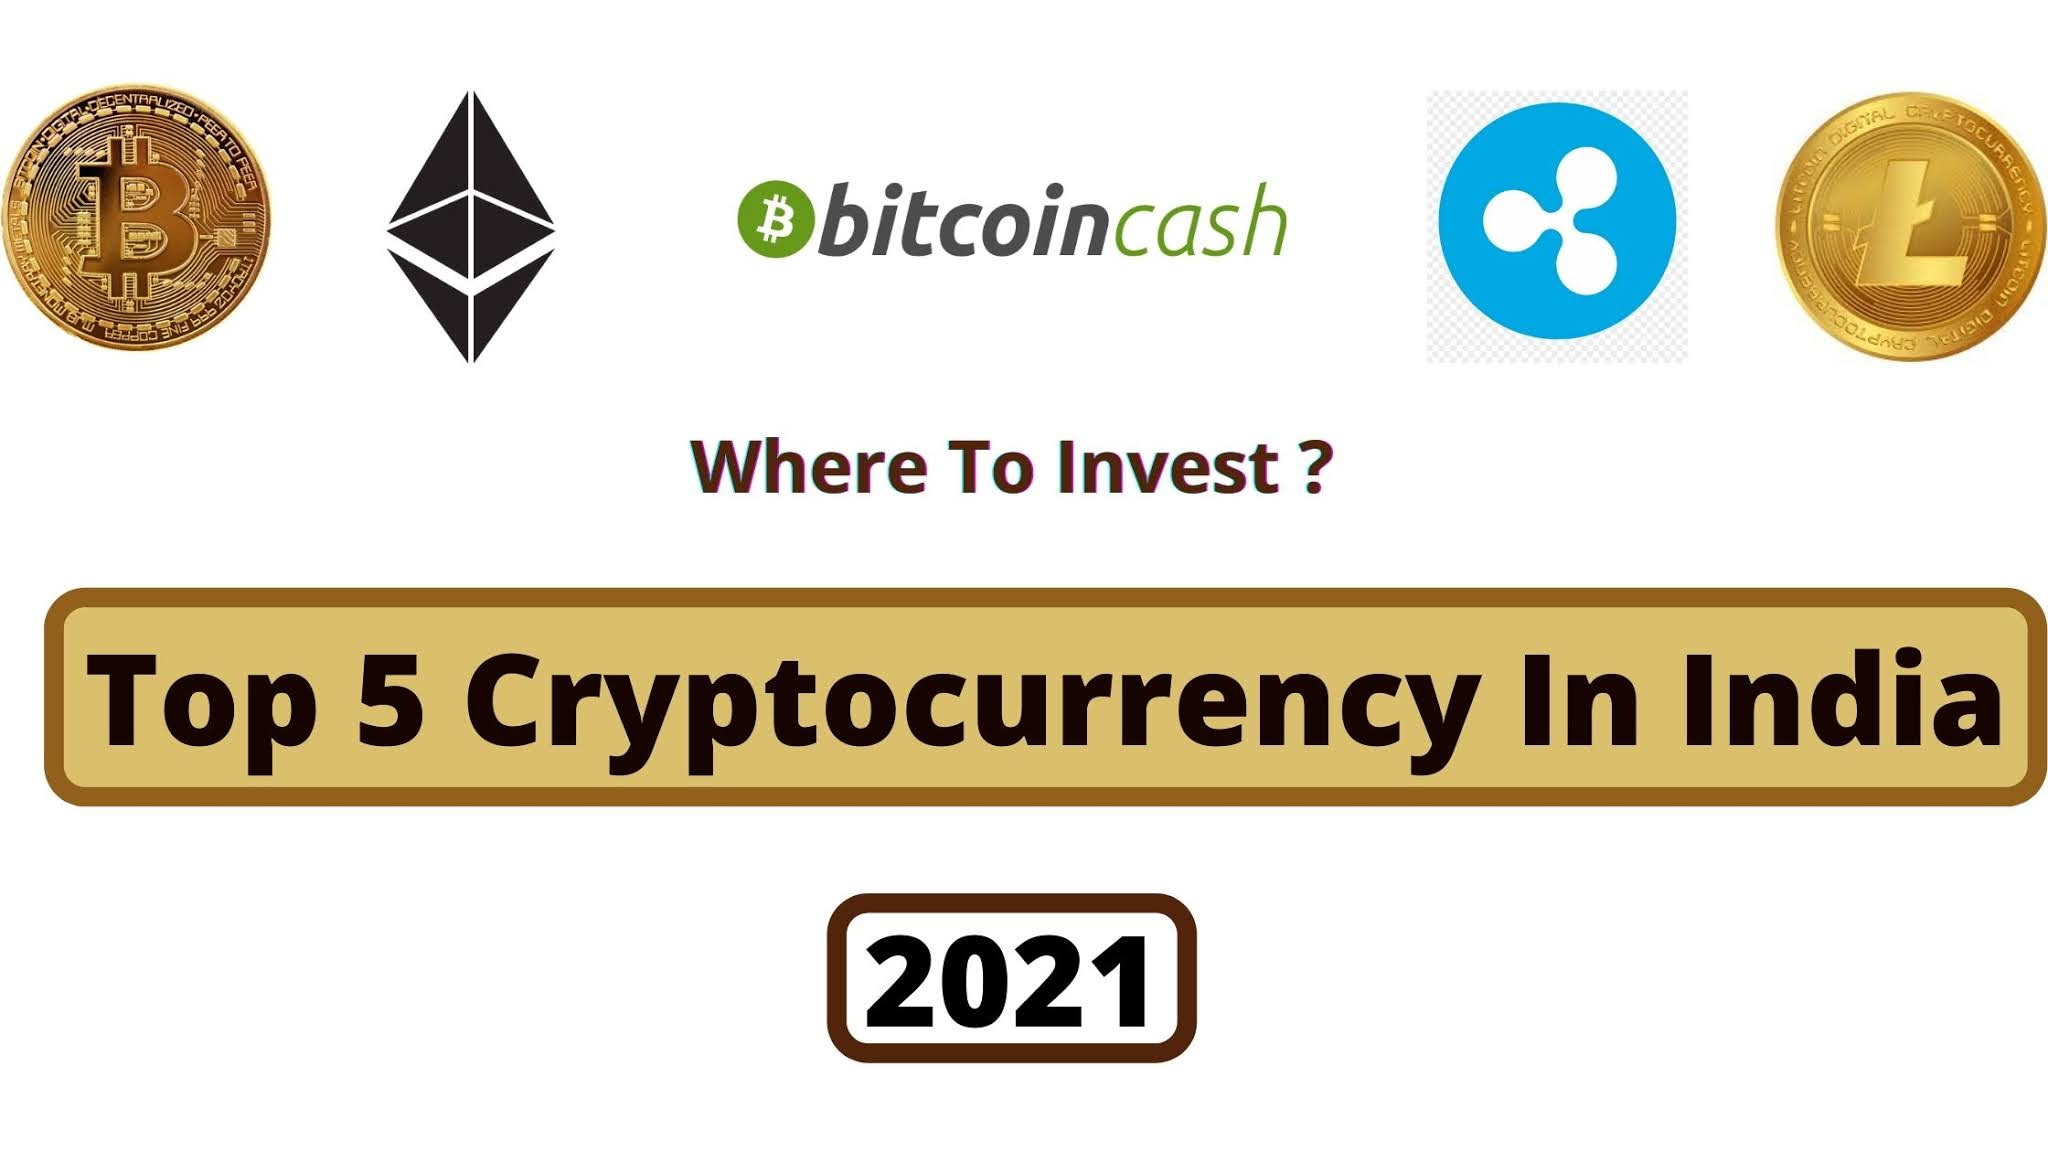 Top 5 Cryptocurrency In India 2021 | Information On Top 5 Cryptocurrency In India 2021